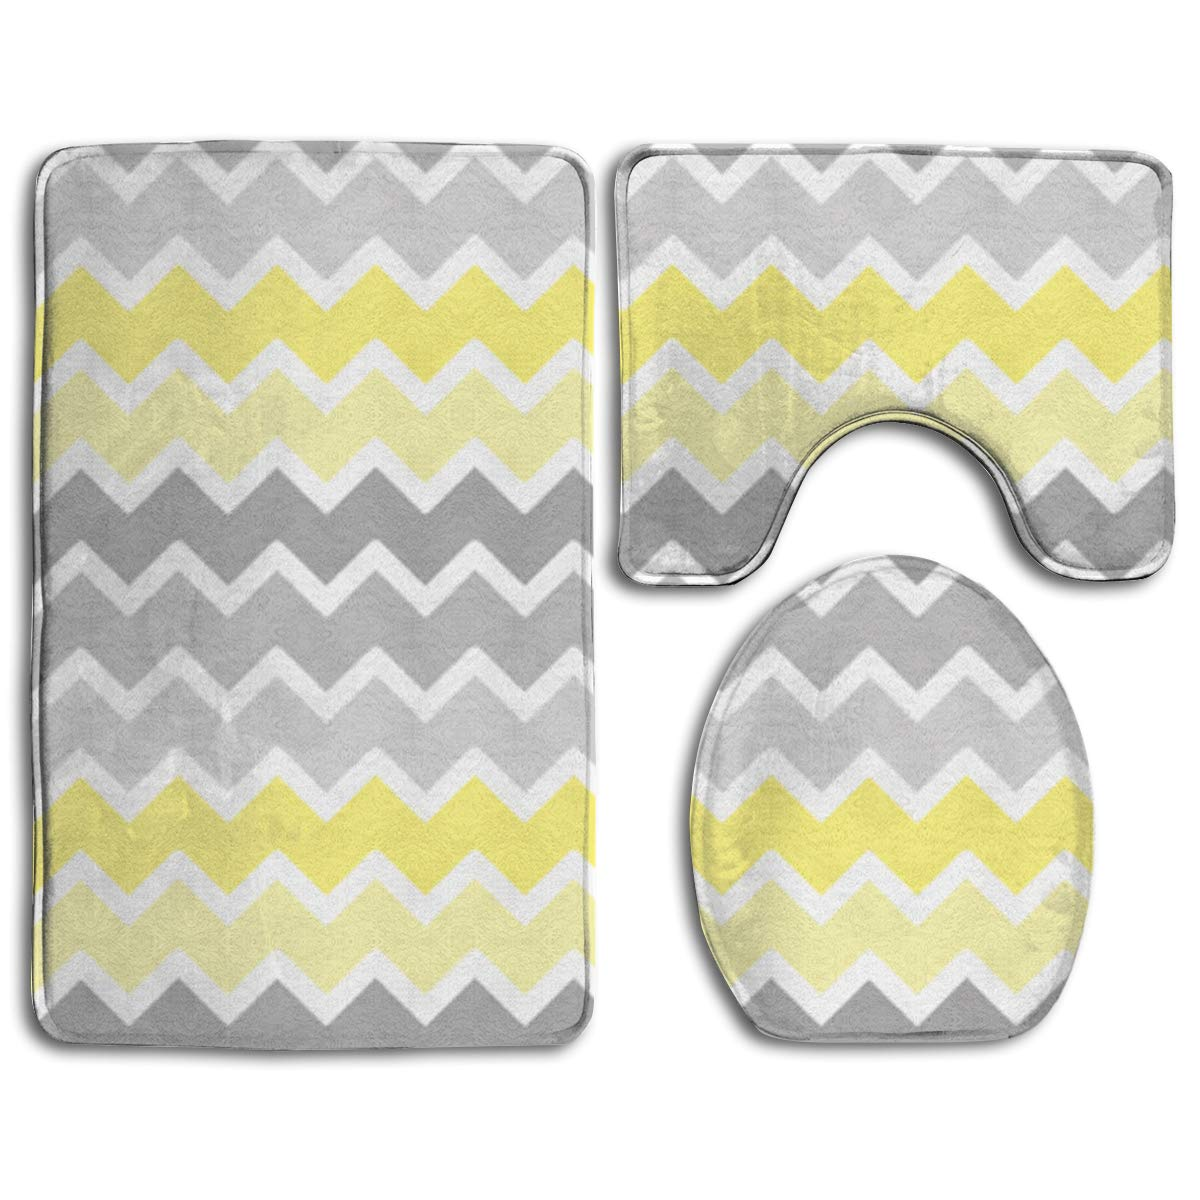 EREHome Yellow Grey Gray Patterns 9 Piece Bathroom Rugs Set Bath Rug  Contour Mat and Toilet Lid Cover